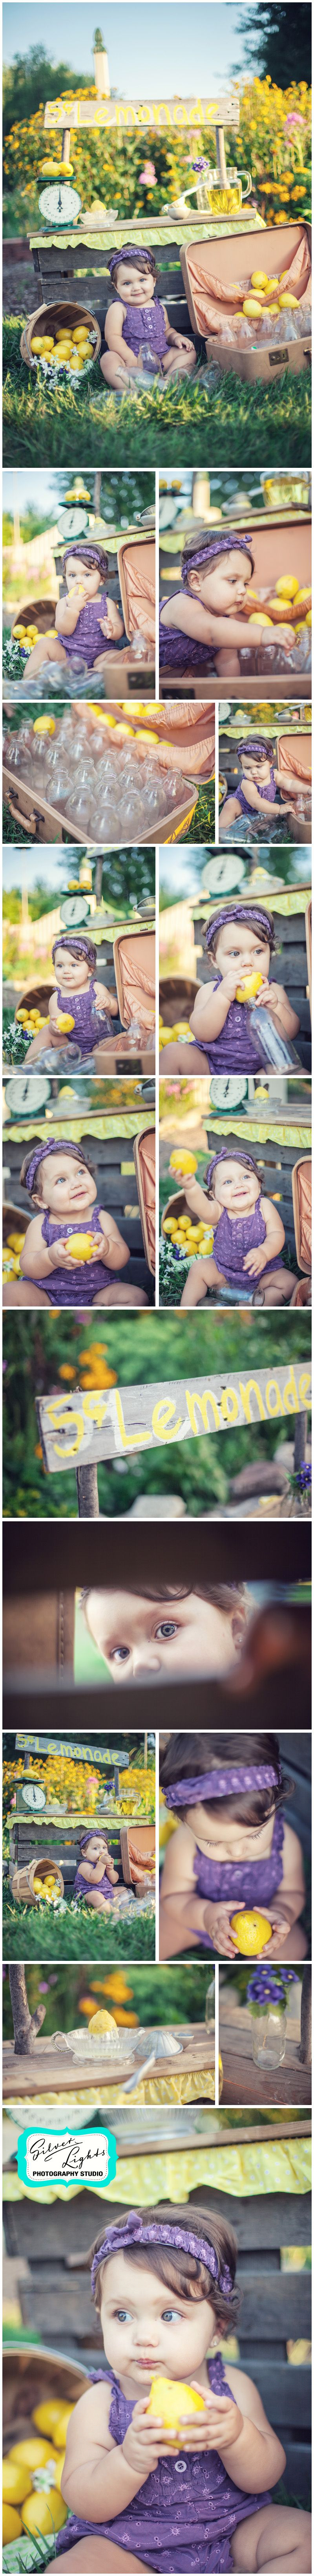 Lemonade stand set up